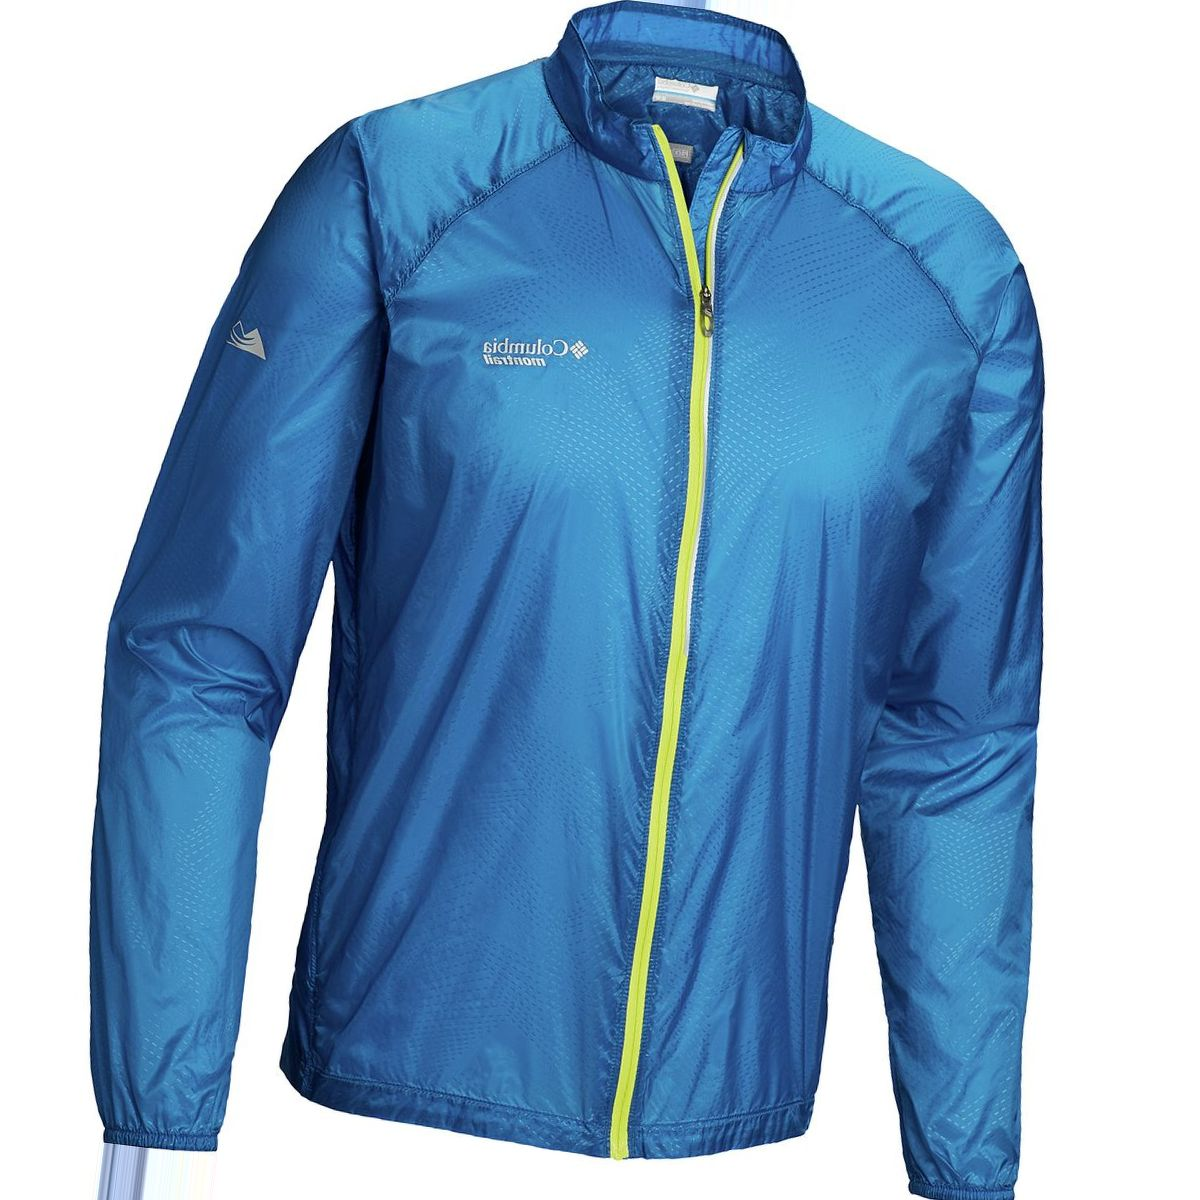 Columbia F.K.T. Wind Jacket - Men's